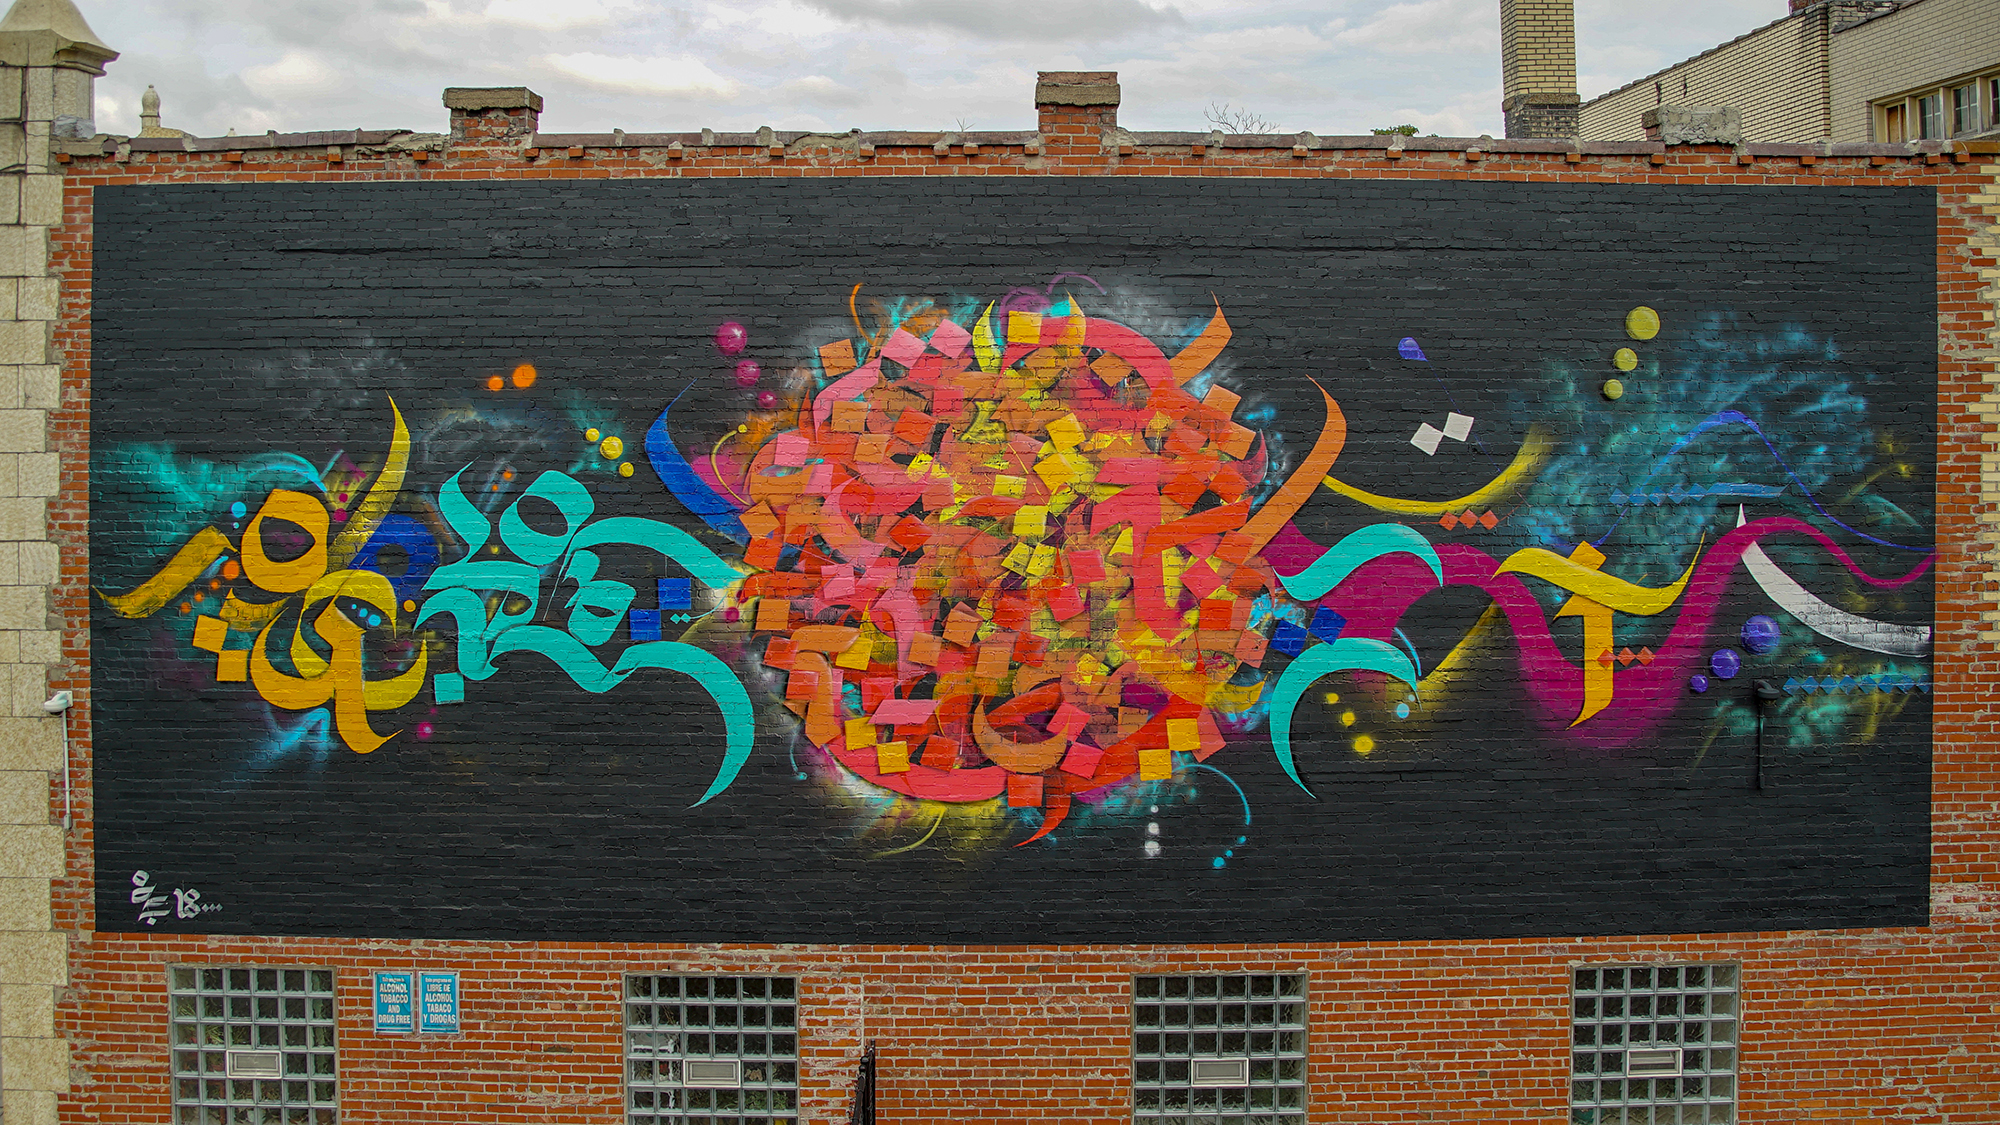 A painted mural on a red brick building - the mural has a black background, an orange and yellow circular shape in the middle of marks of different colors on the sides